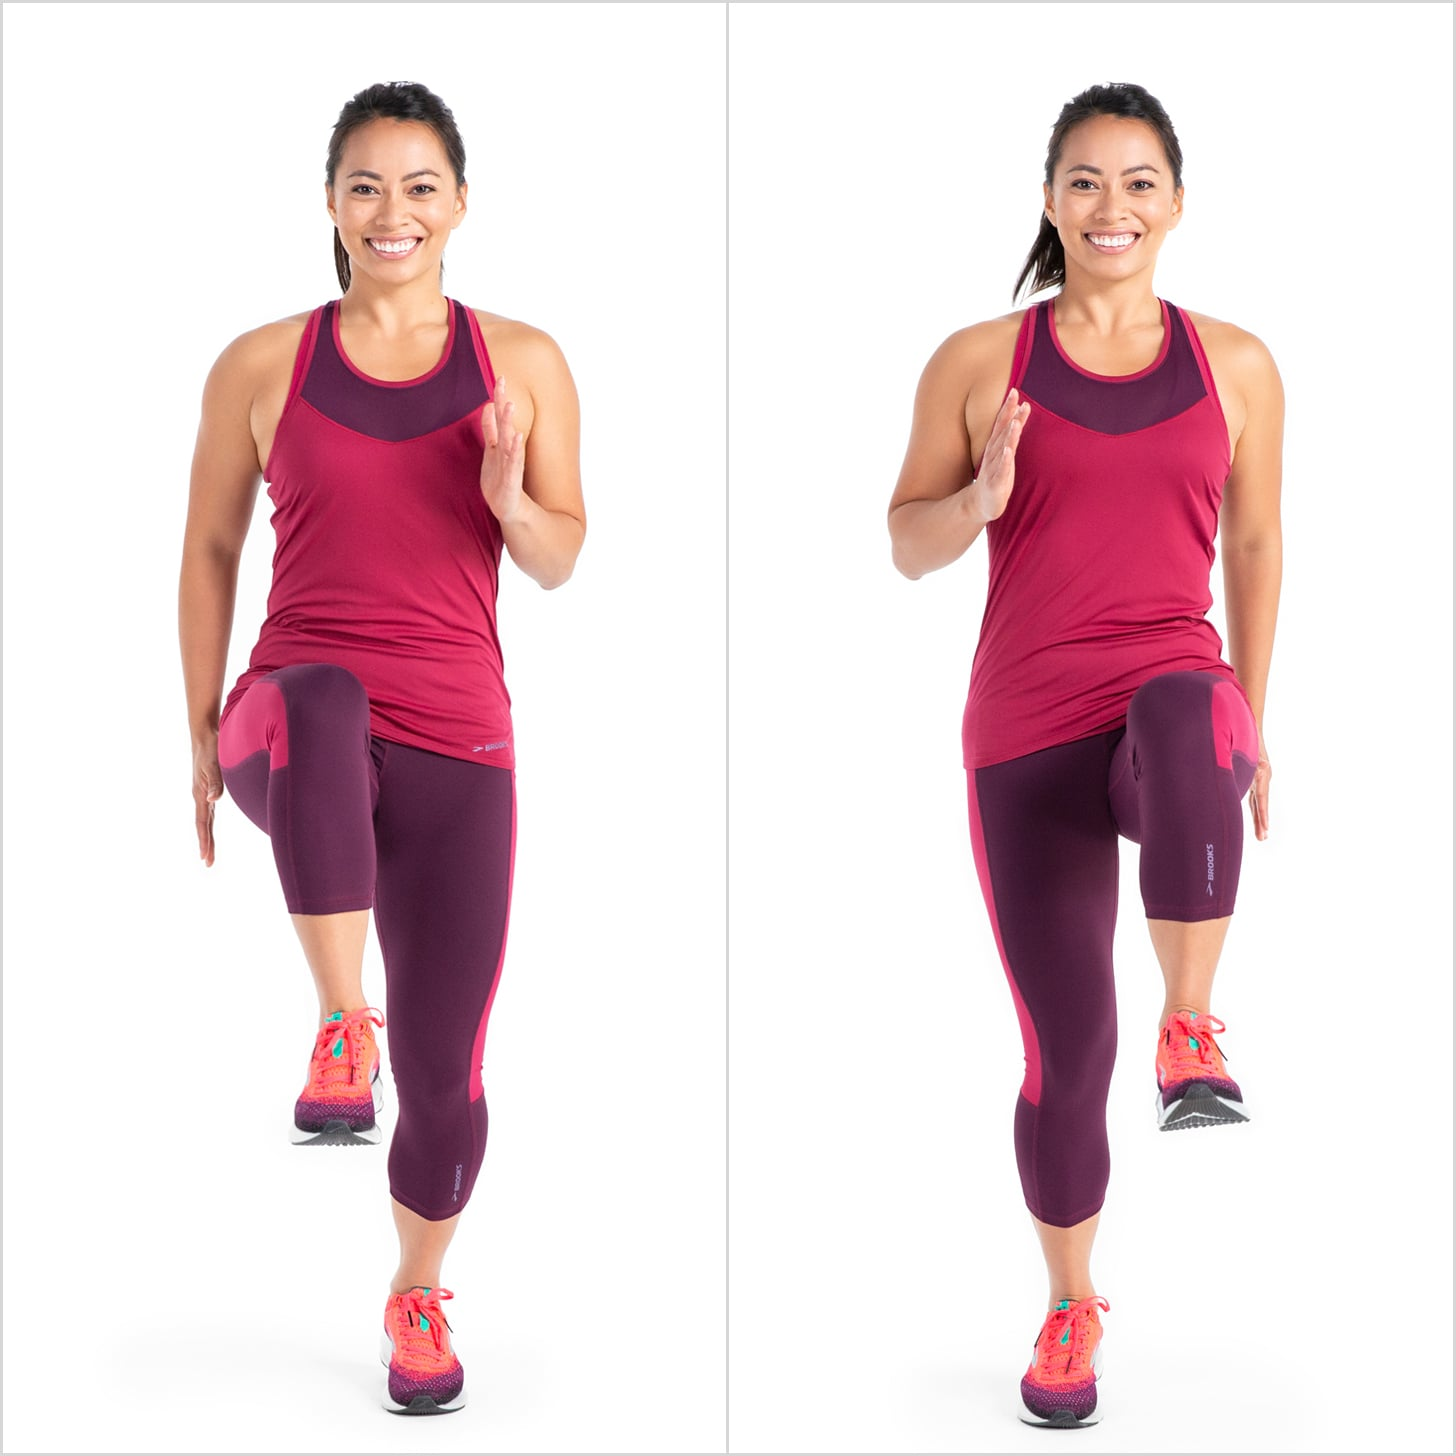 High Knee Run | Carve Your Core With 10 Minutes of Cardio ...